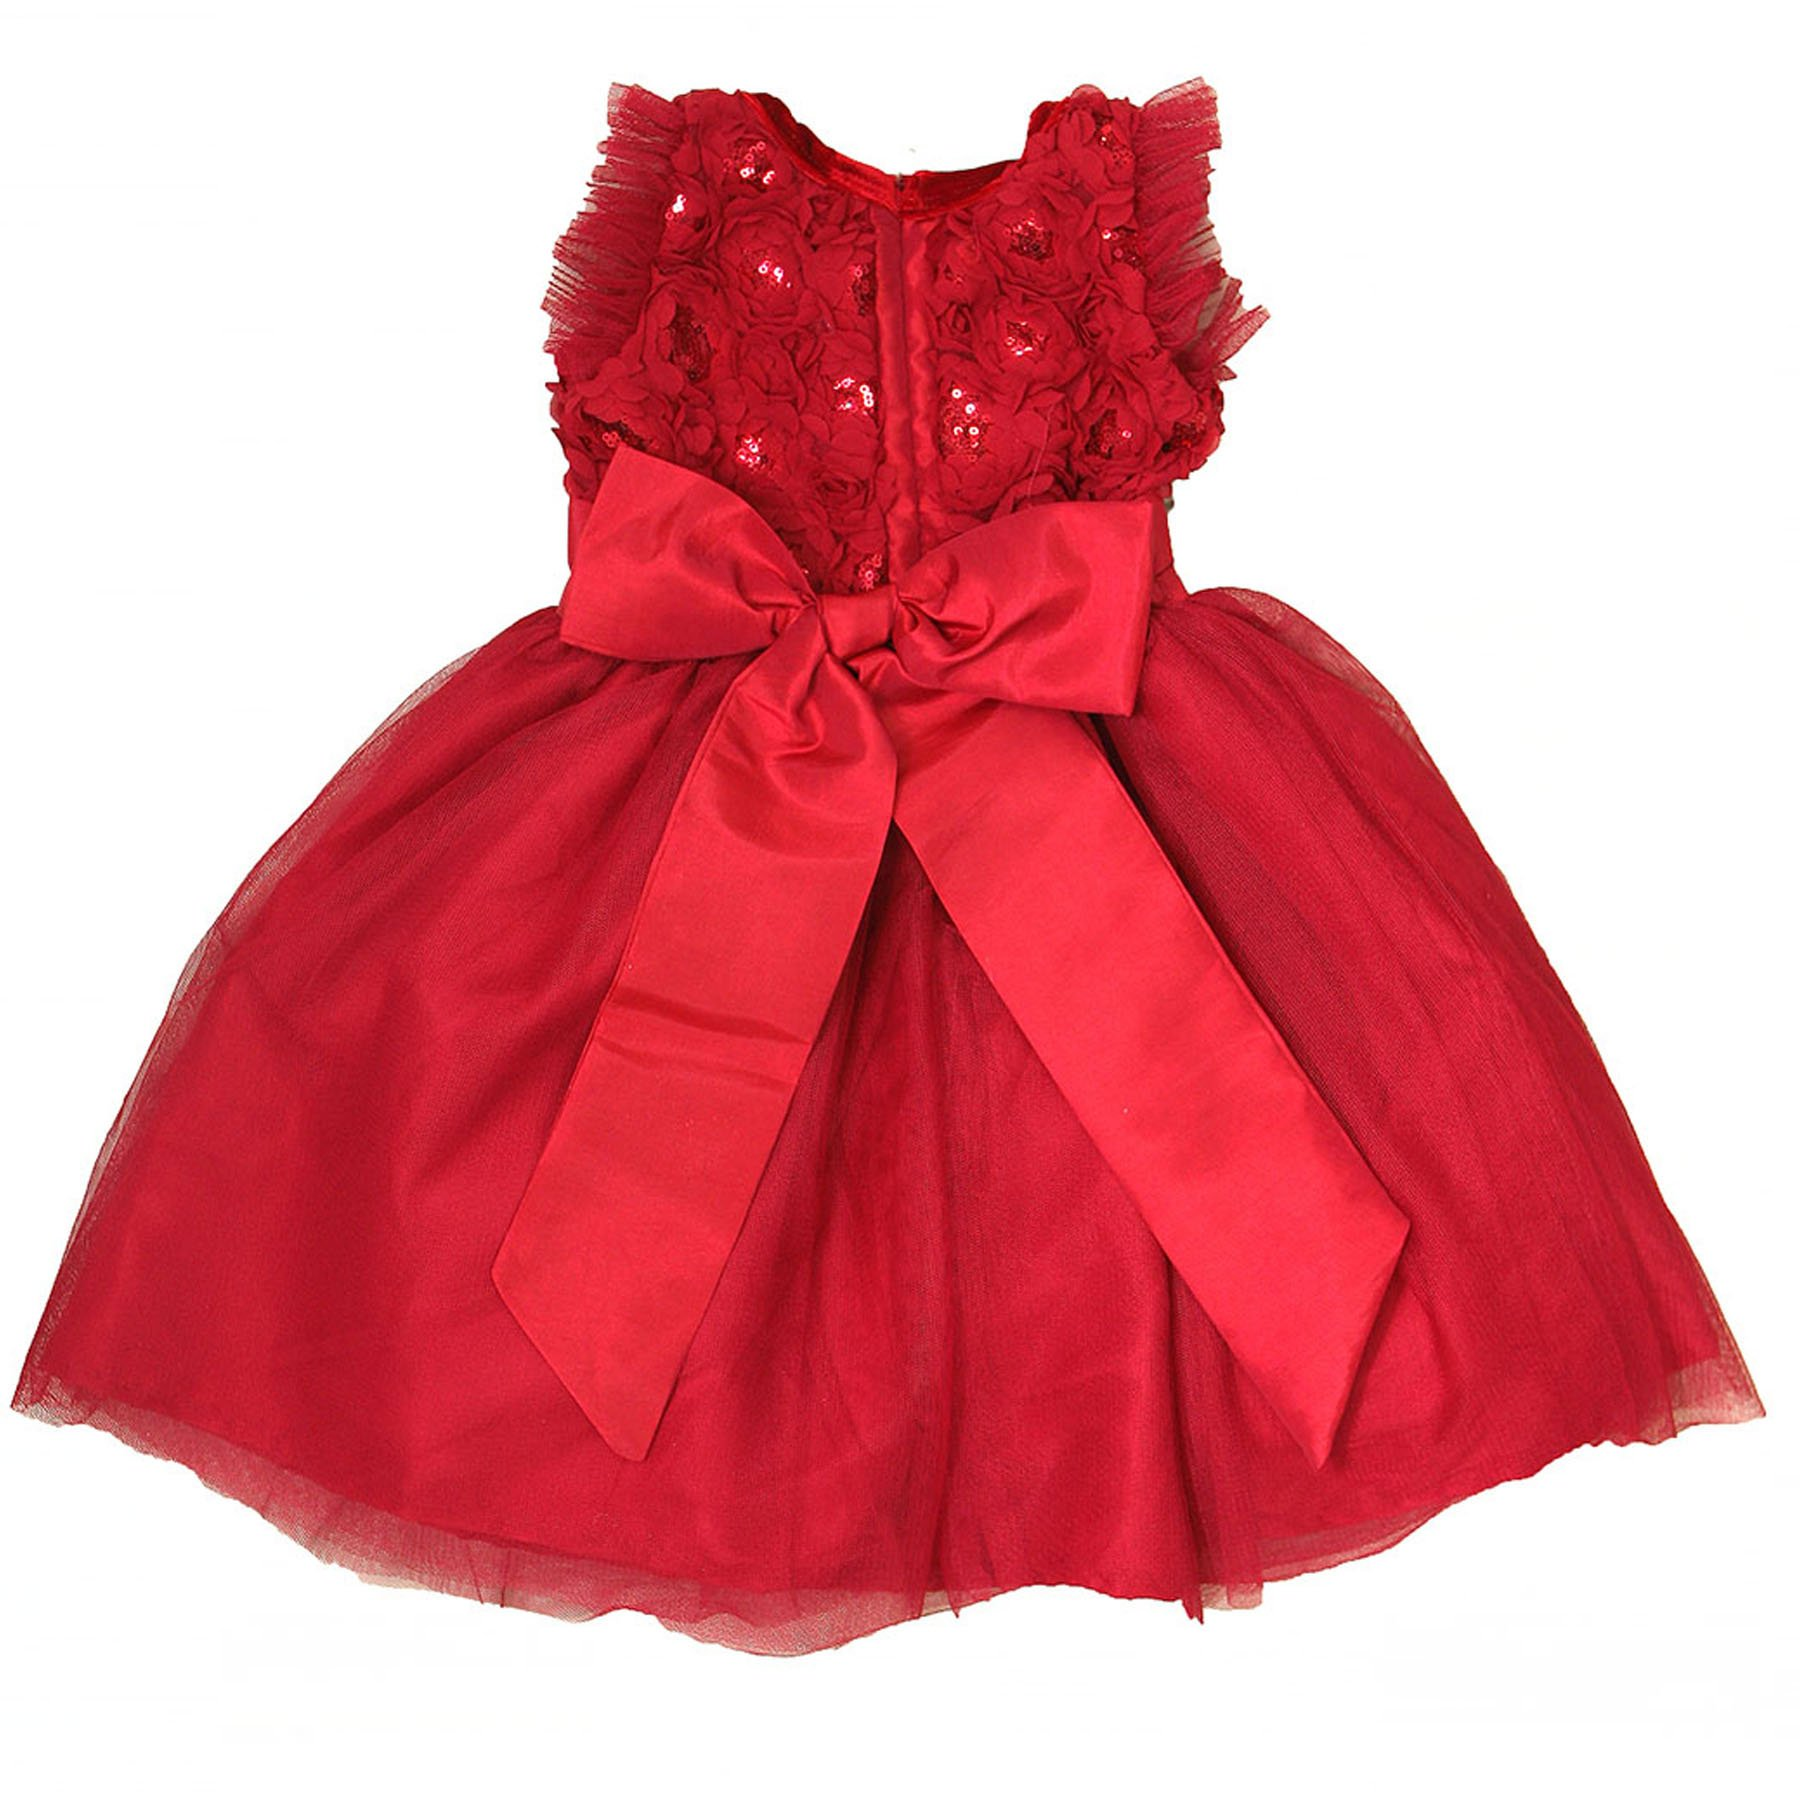 Purrfect by haute baby quot holiday sparkle quot toddler red dress